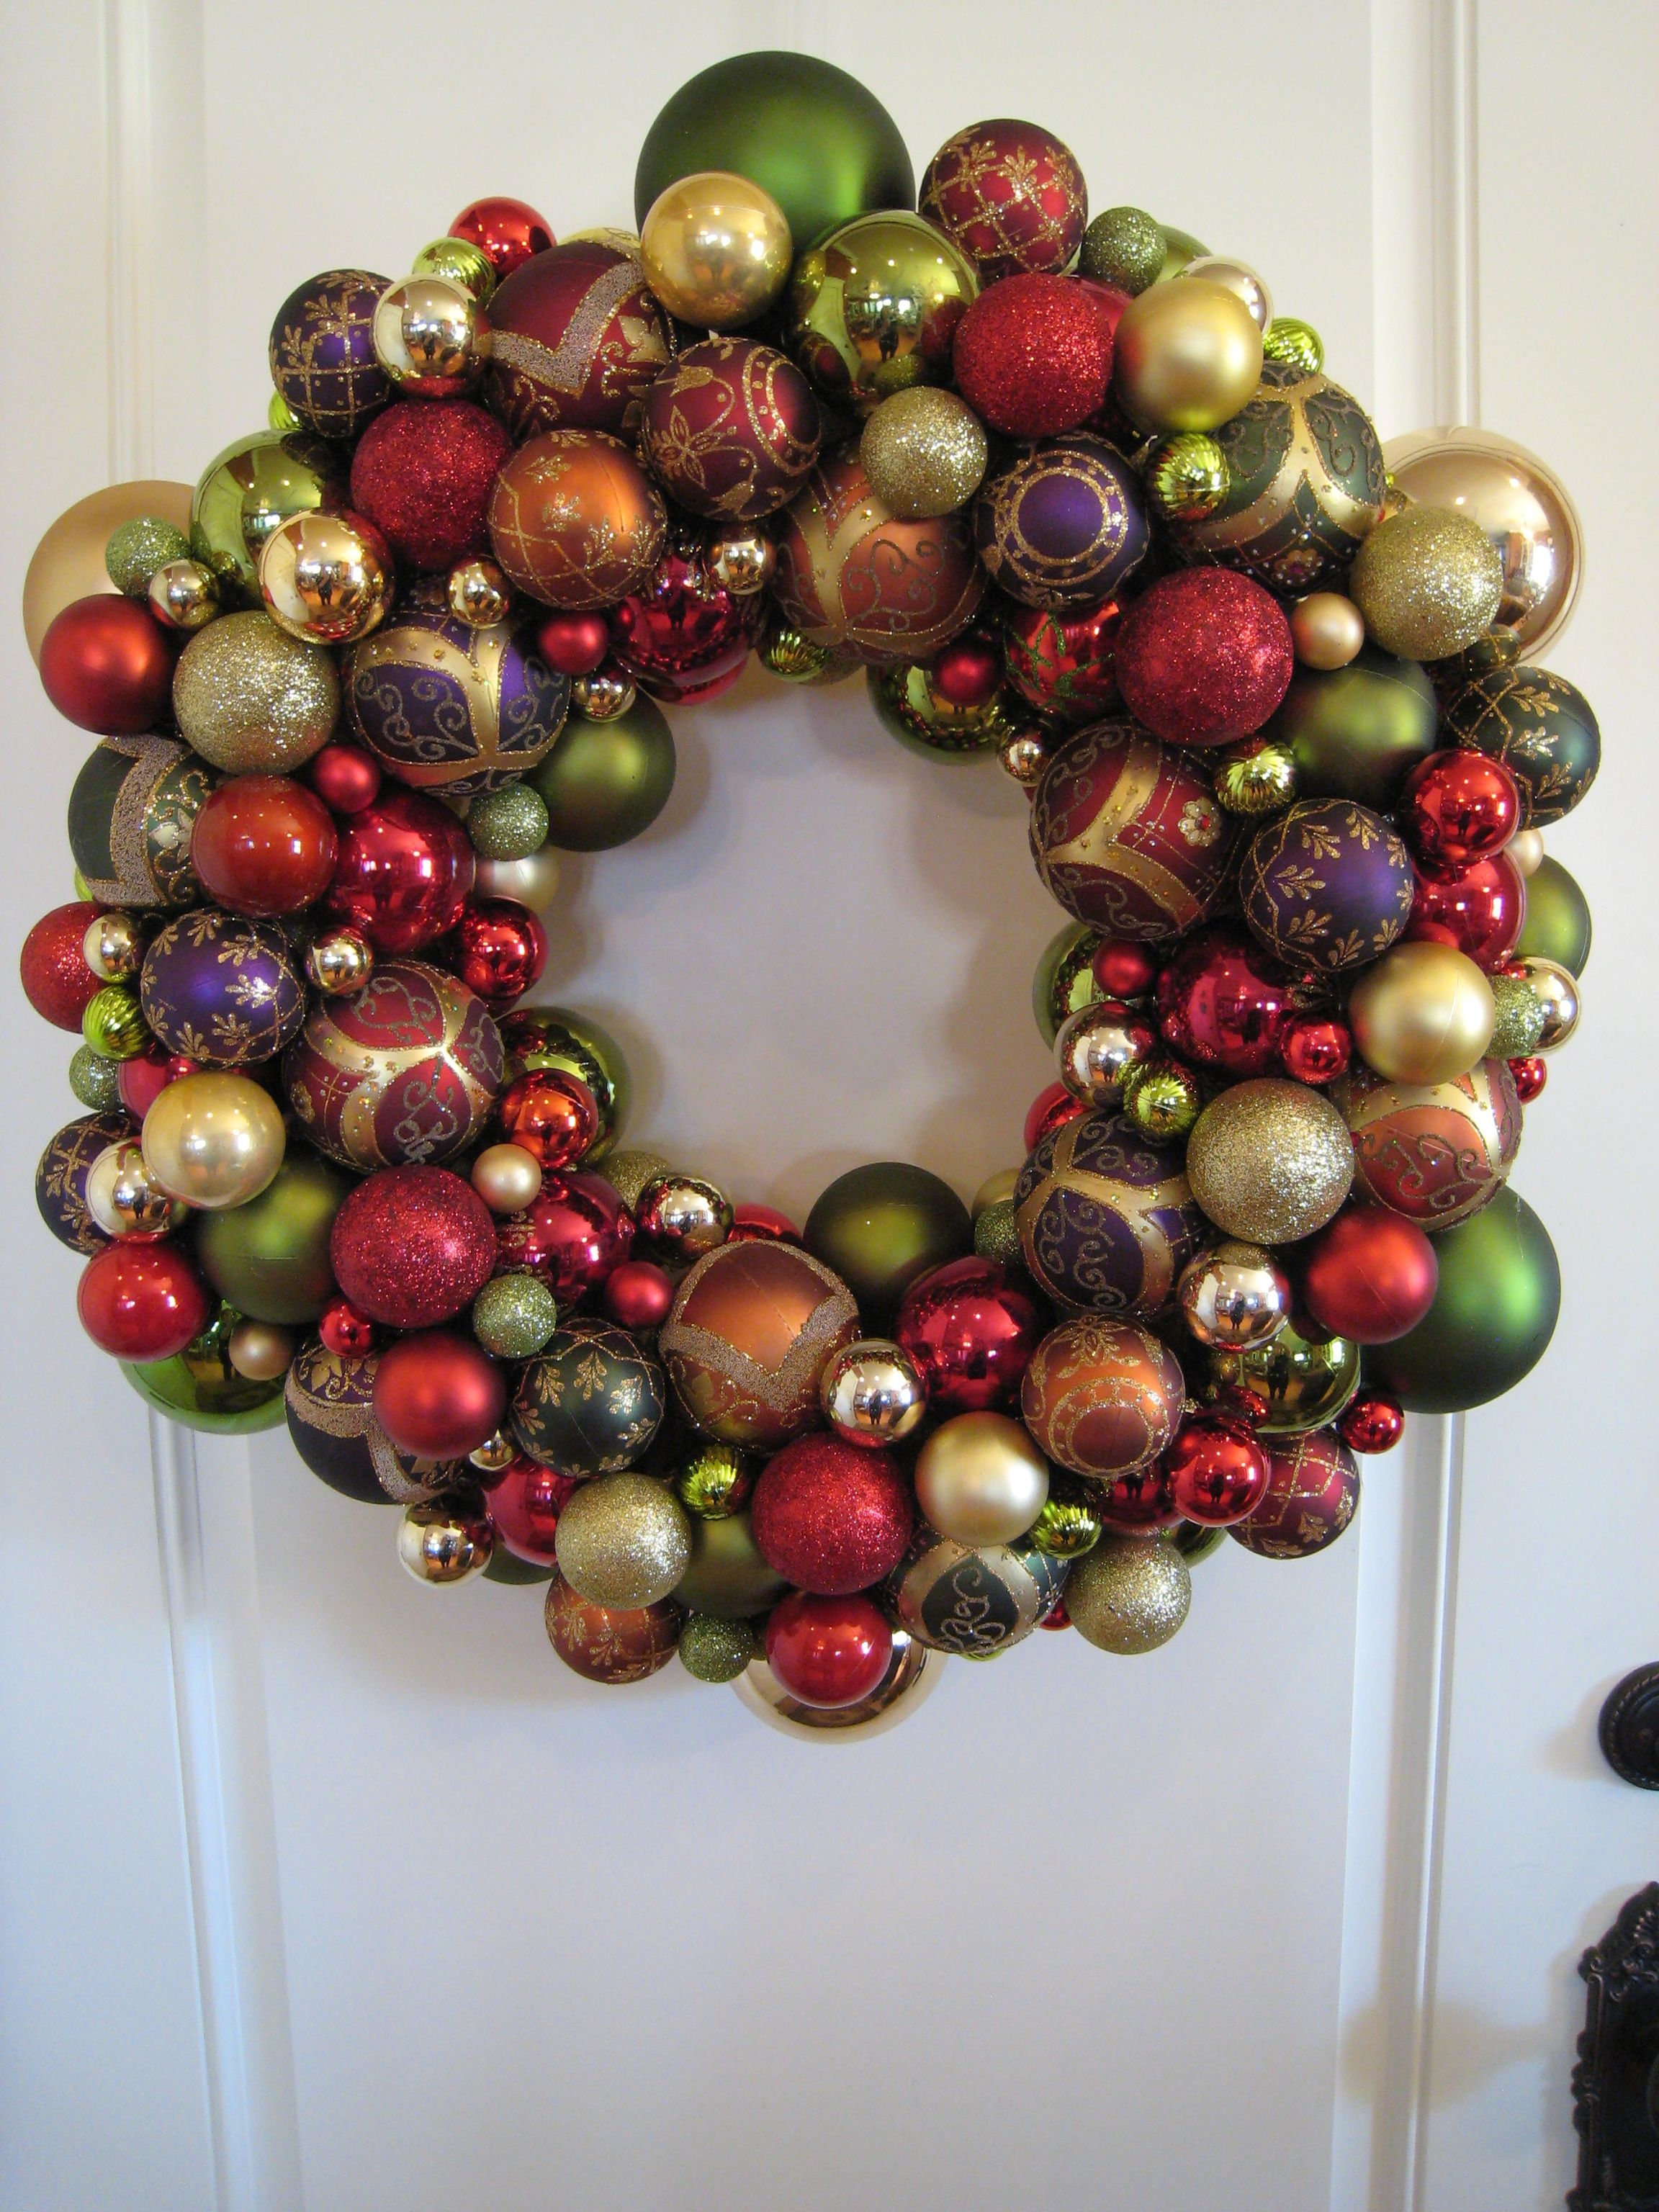 Styrofoam Wreath Wrapped In Ribbon With Christmas Balls Of All Sizes Christmas Wreaths Christmas Ornaments Christmas Projects